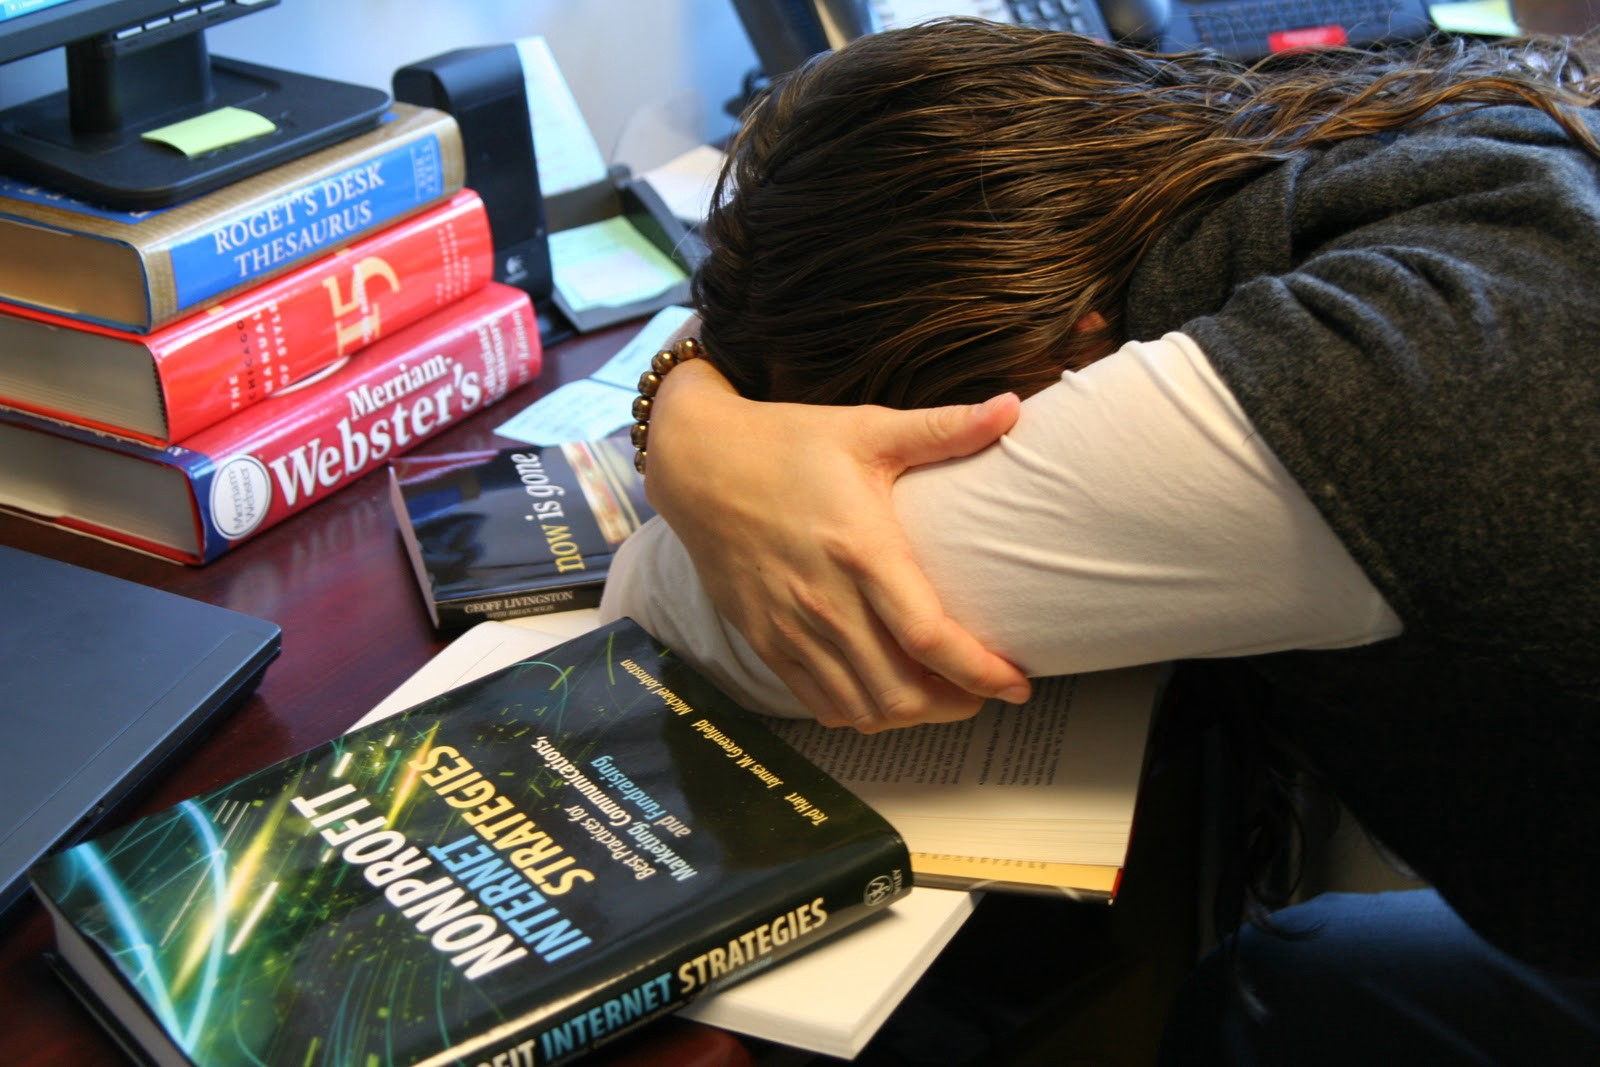 Alternative (and Legal?) Ways To Enhance Your Studying Potential